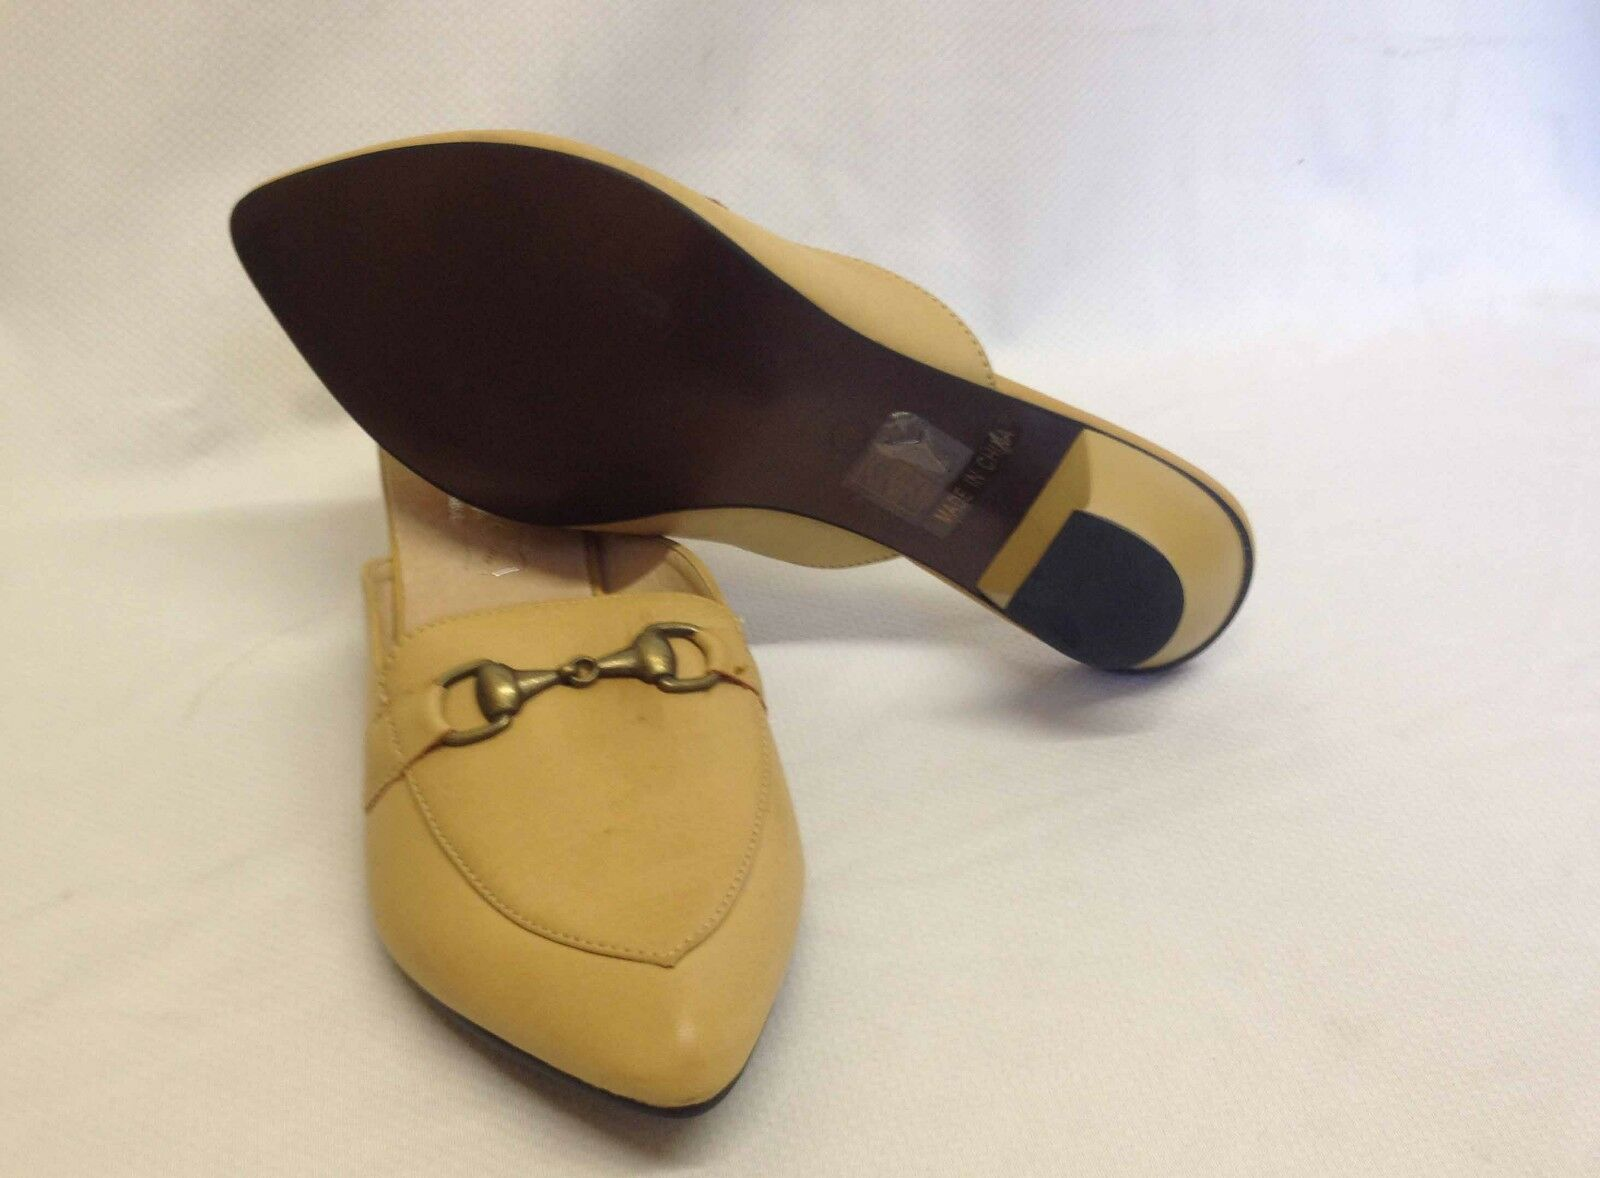 12 X JOB LOT Damenschuhe LADIES MID BLOCK HEEL PEEP MULE TOE SLIP ON BEIGE MULE PEEP SANDALS 90e3b1